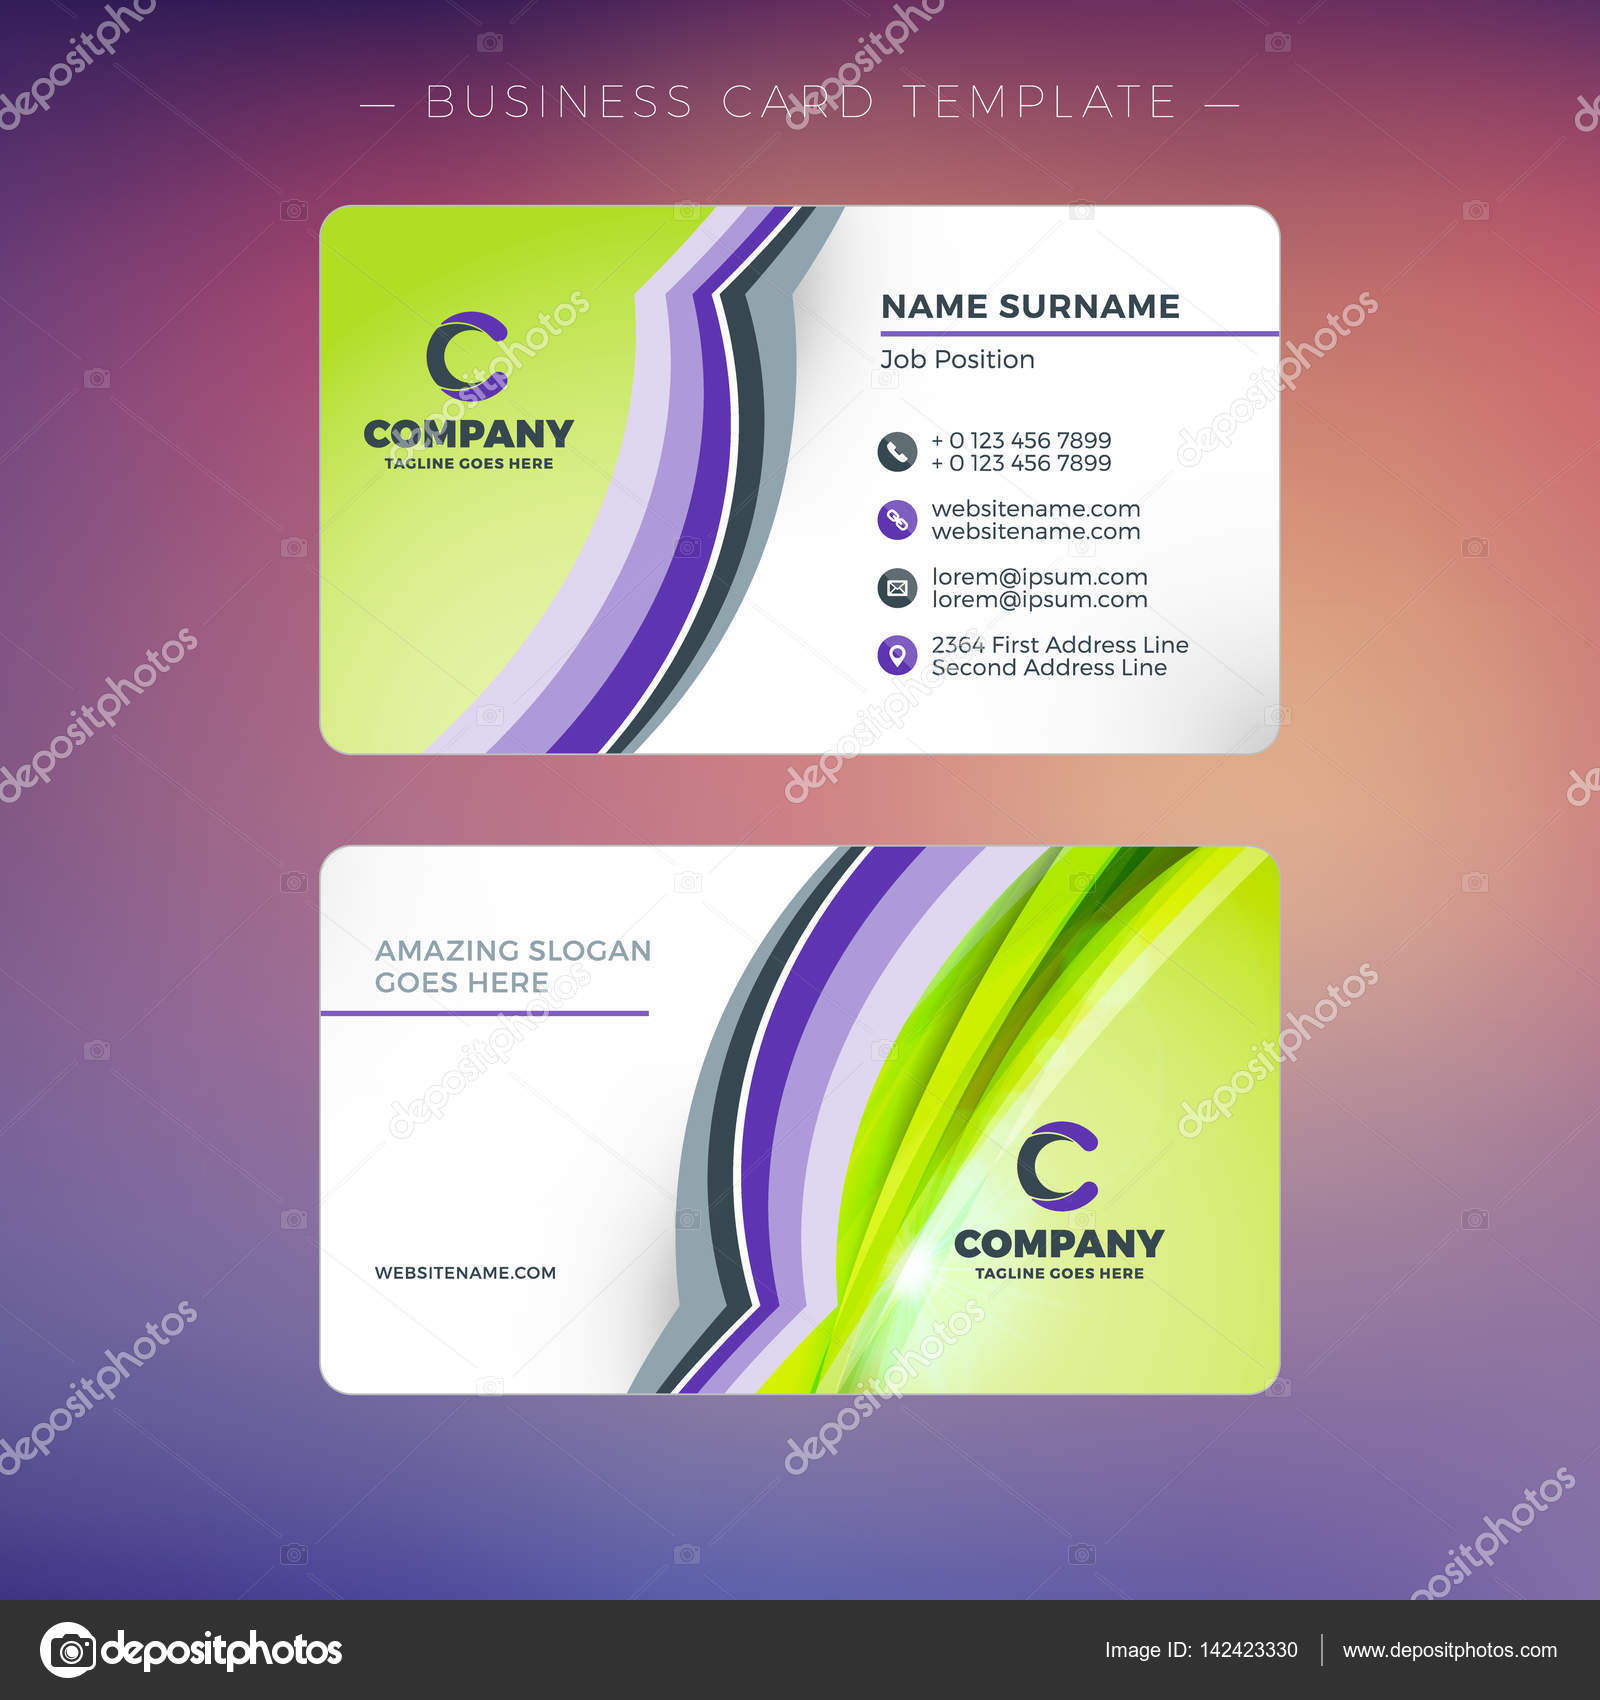 Creative Business Card Template With Abstract Background Vector Illustration Stationery Design Stock